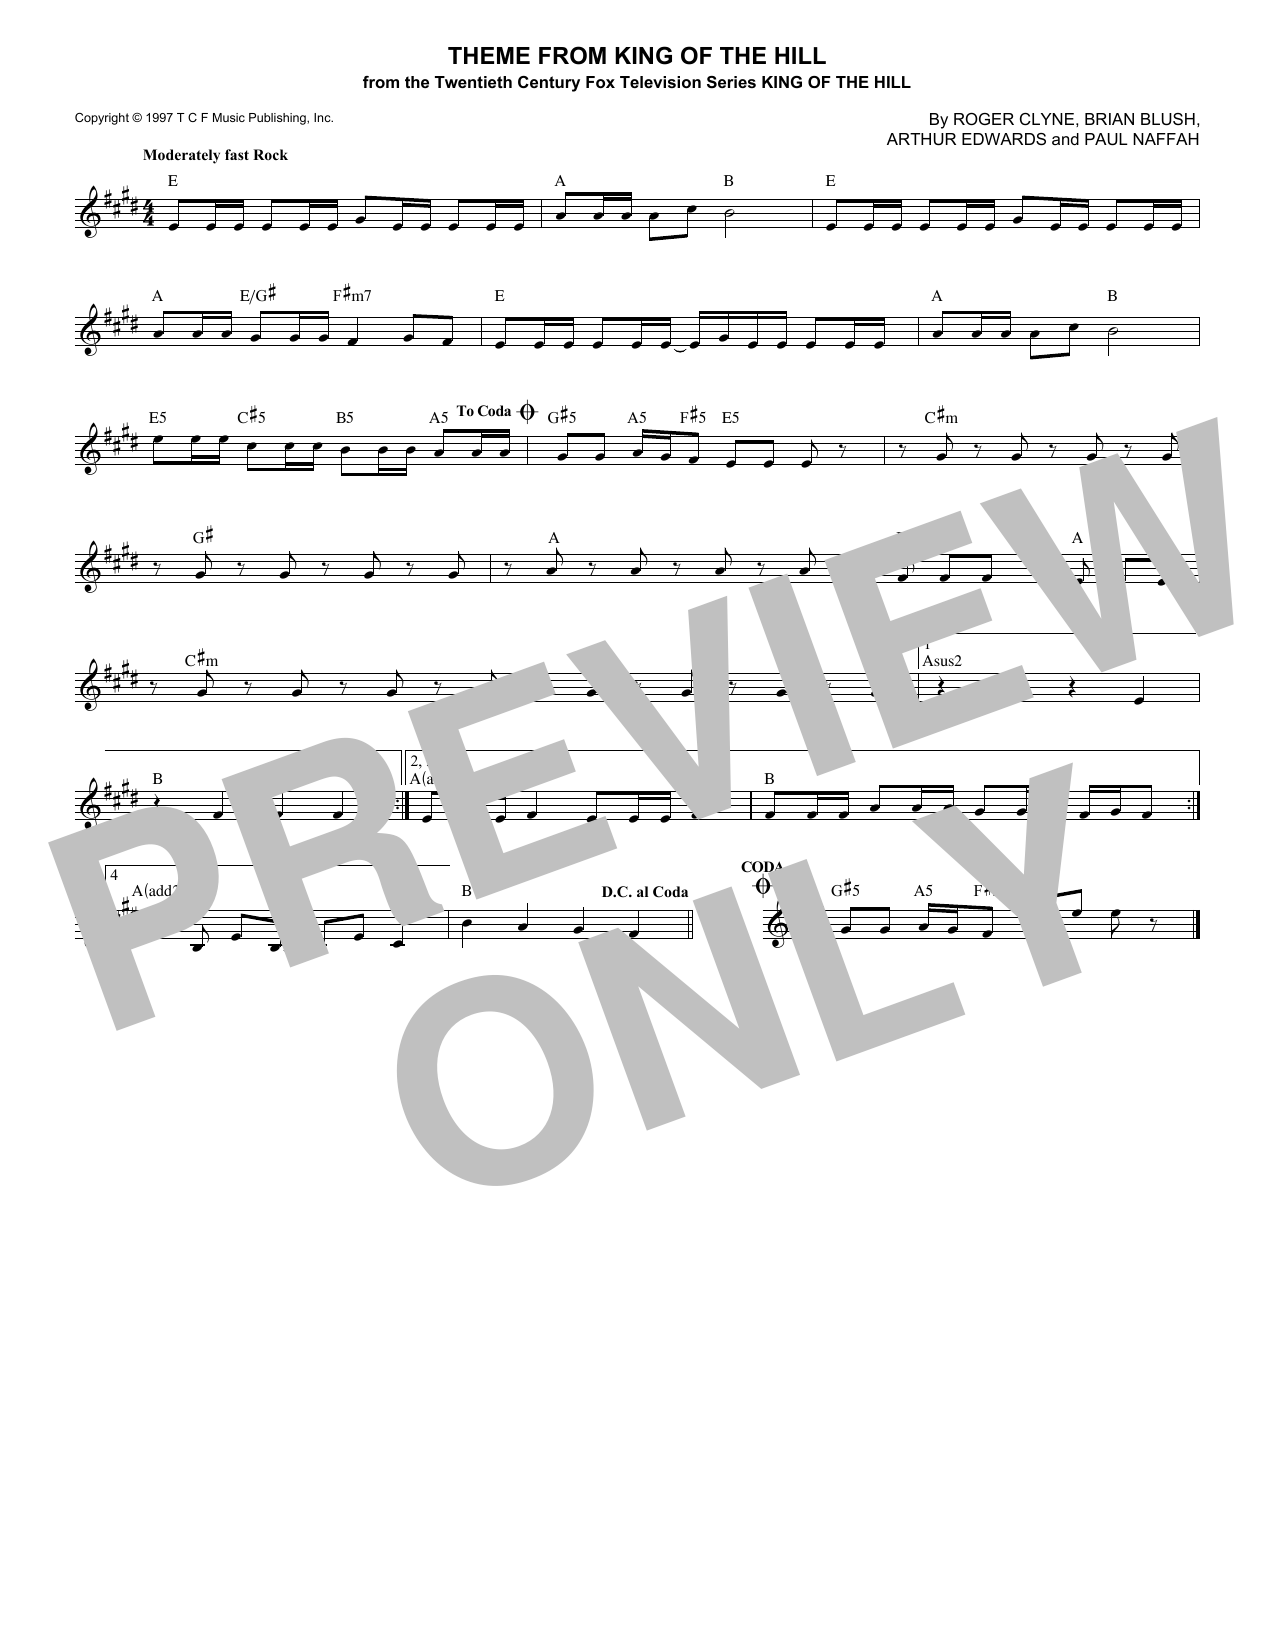 The Refreshments Theme From King Of The Hill sheet music notes and chords. Download Printable PDF.